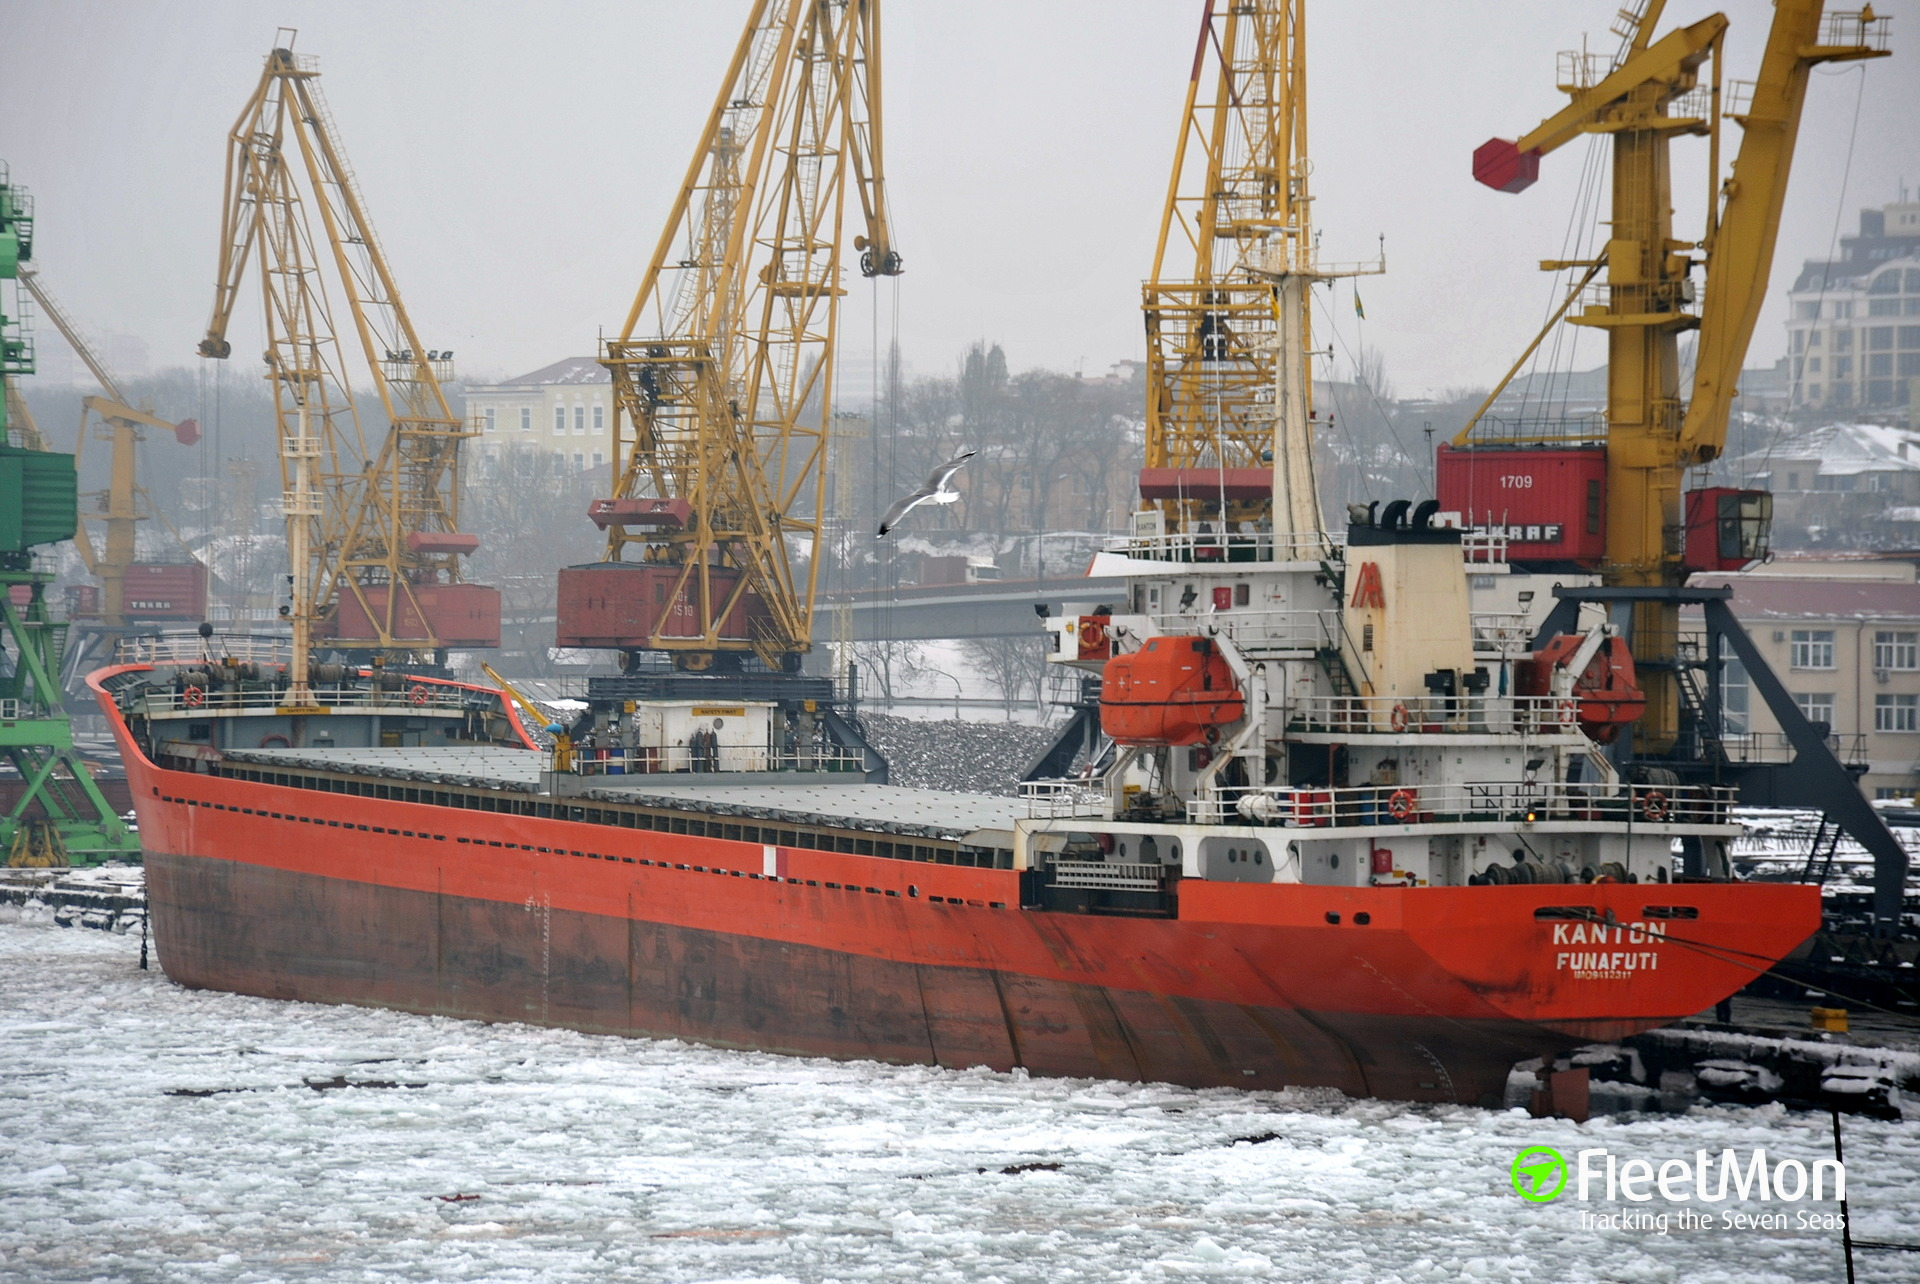 Turkish freighter Kanton arrested in Ukraine for visiting Crimea, may be confiscated